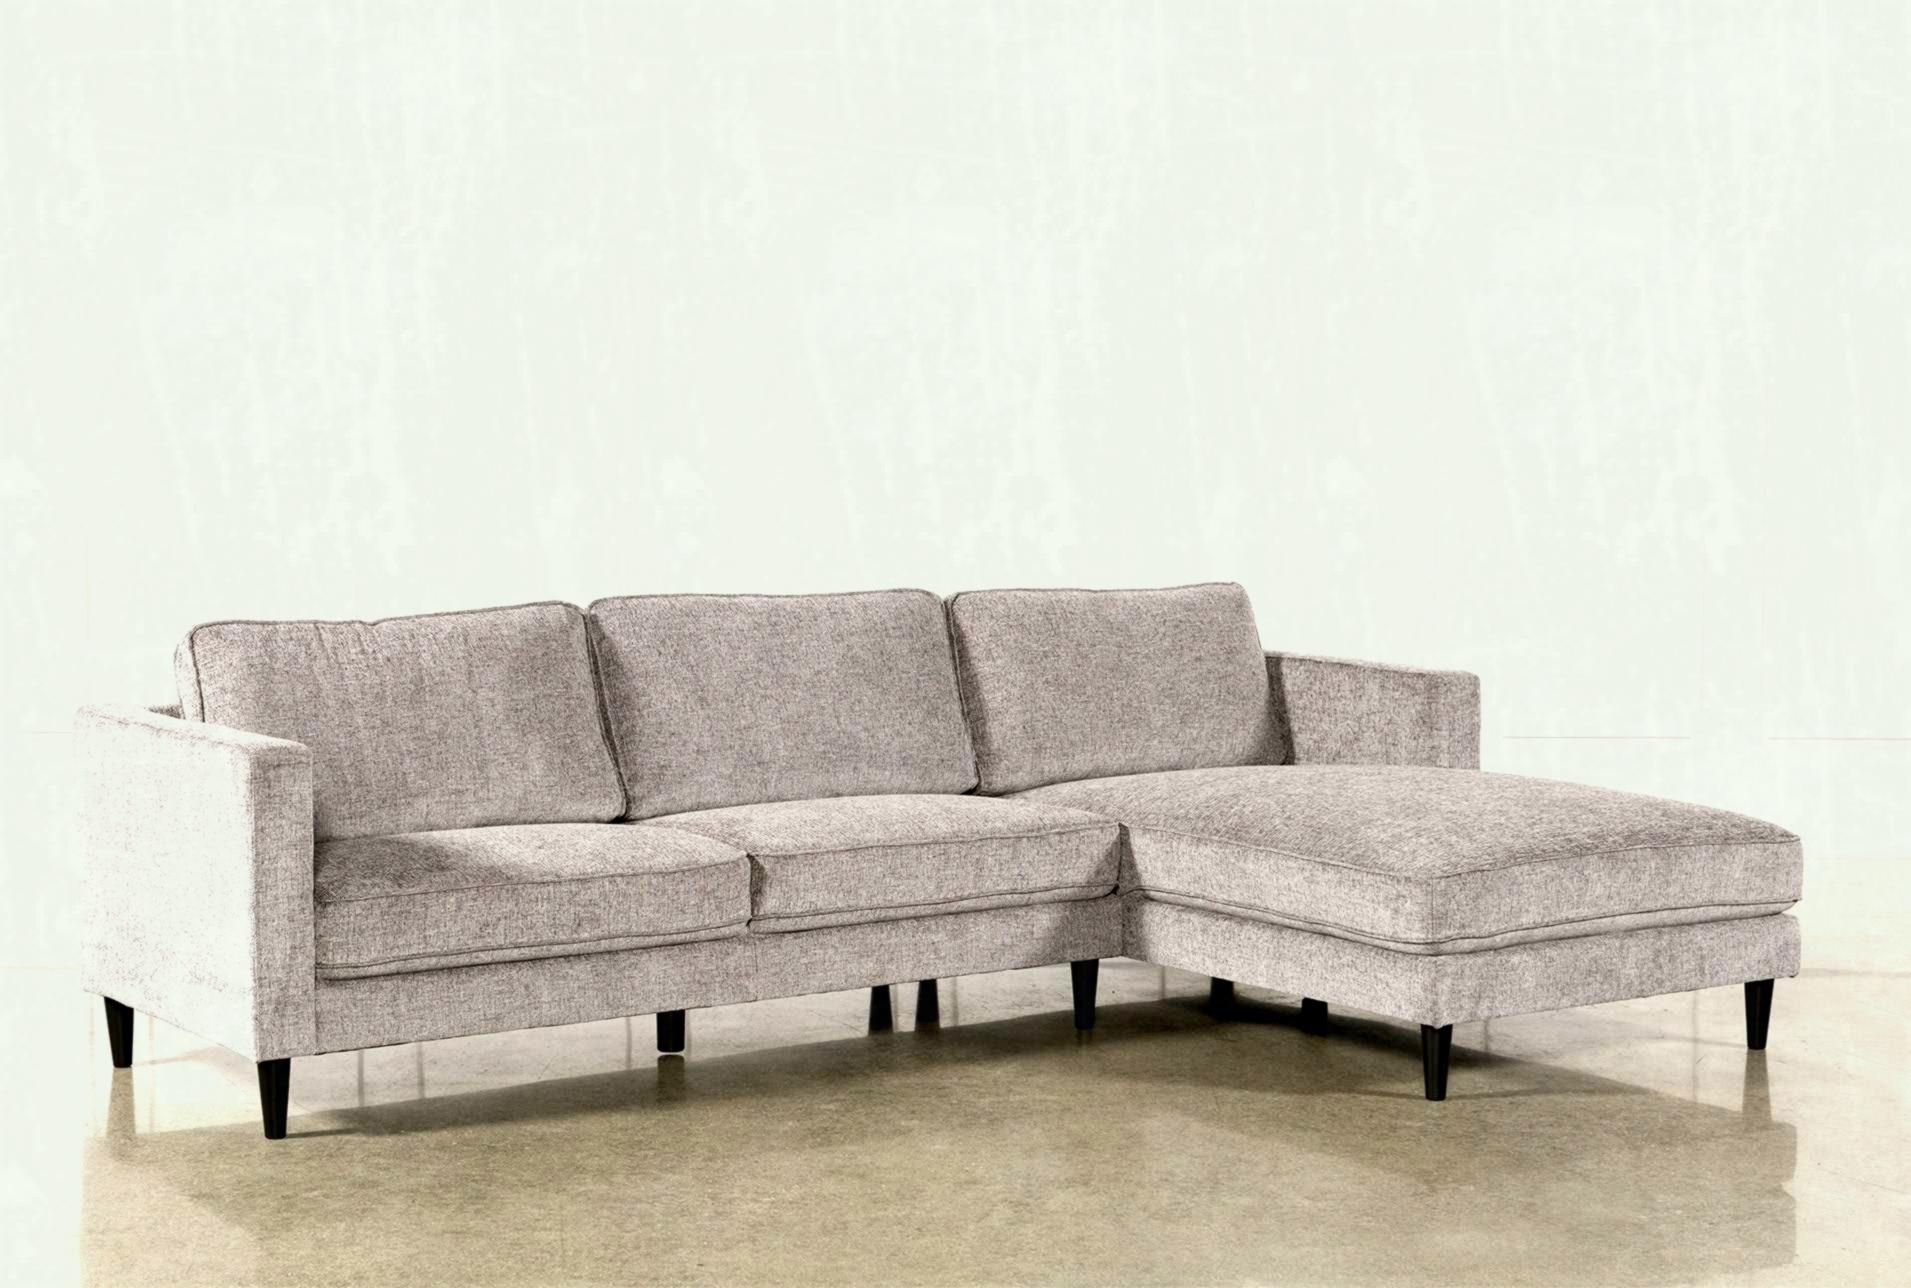 Mix And Match Seats Living Spaces – Garage Plans With Living Space Within Cosmos Grey 2 Piece Sectionals With Raf Chaise (View 14 of 25)